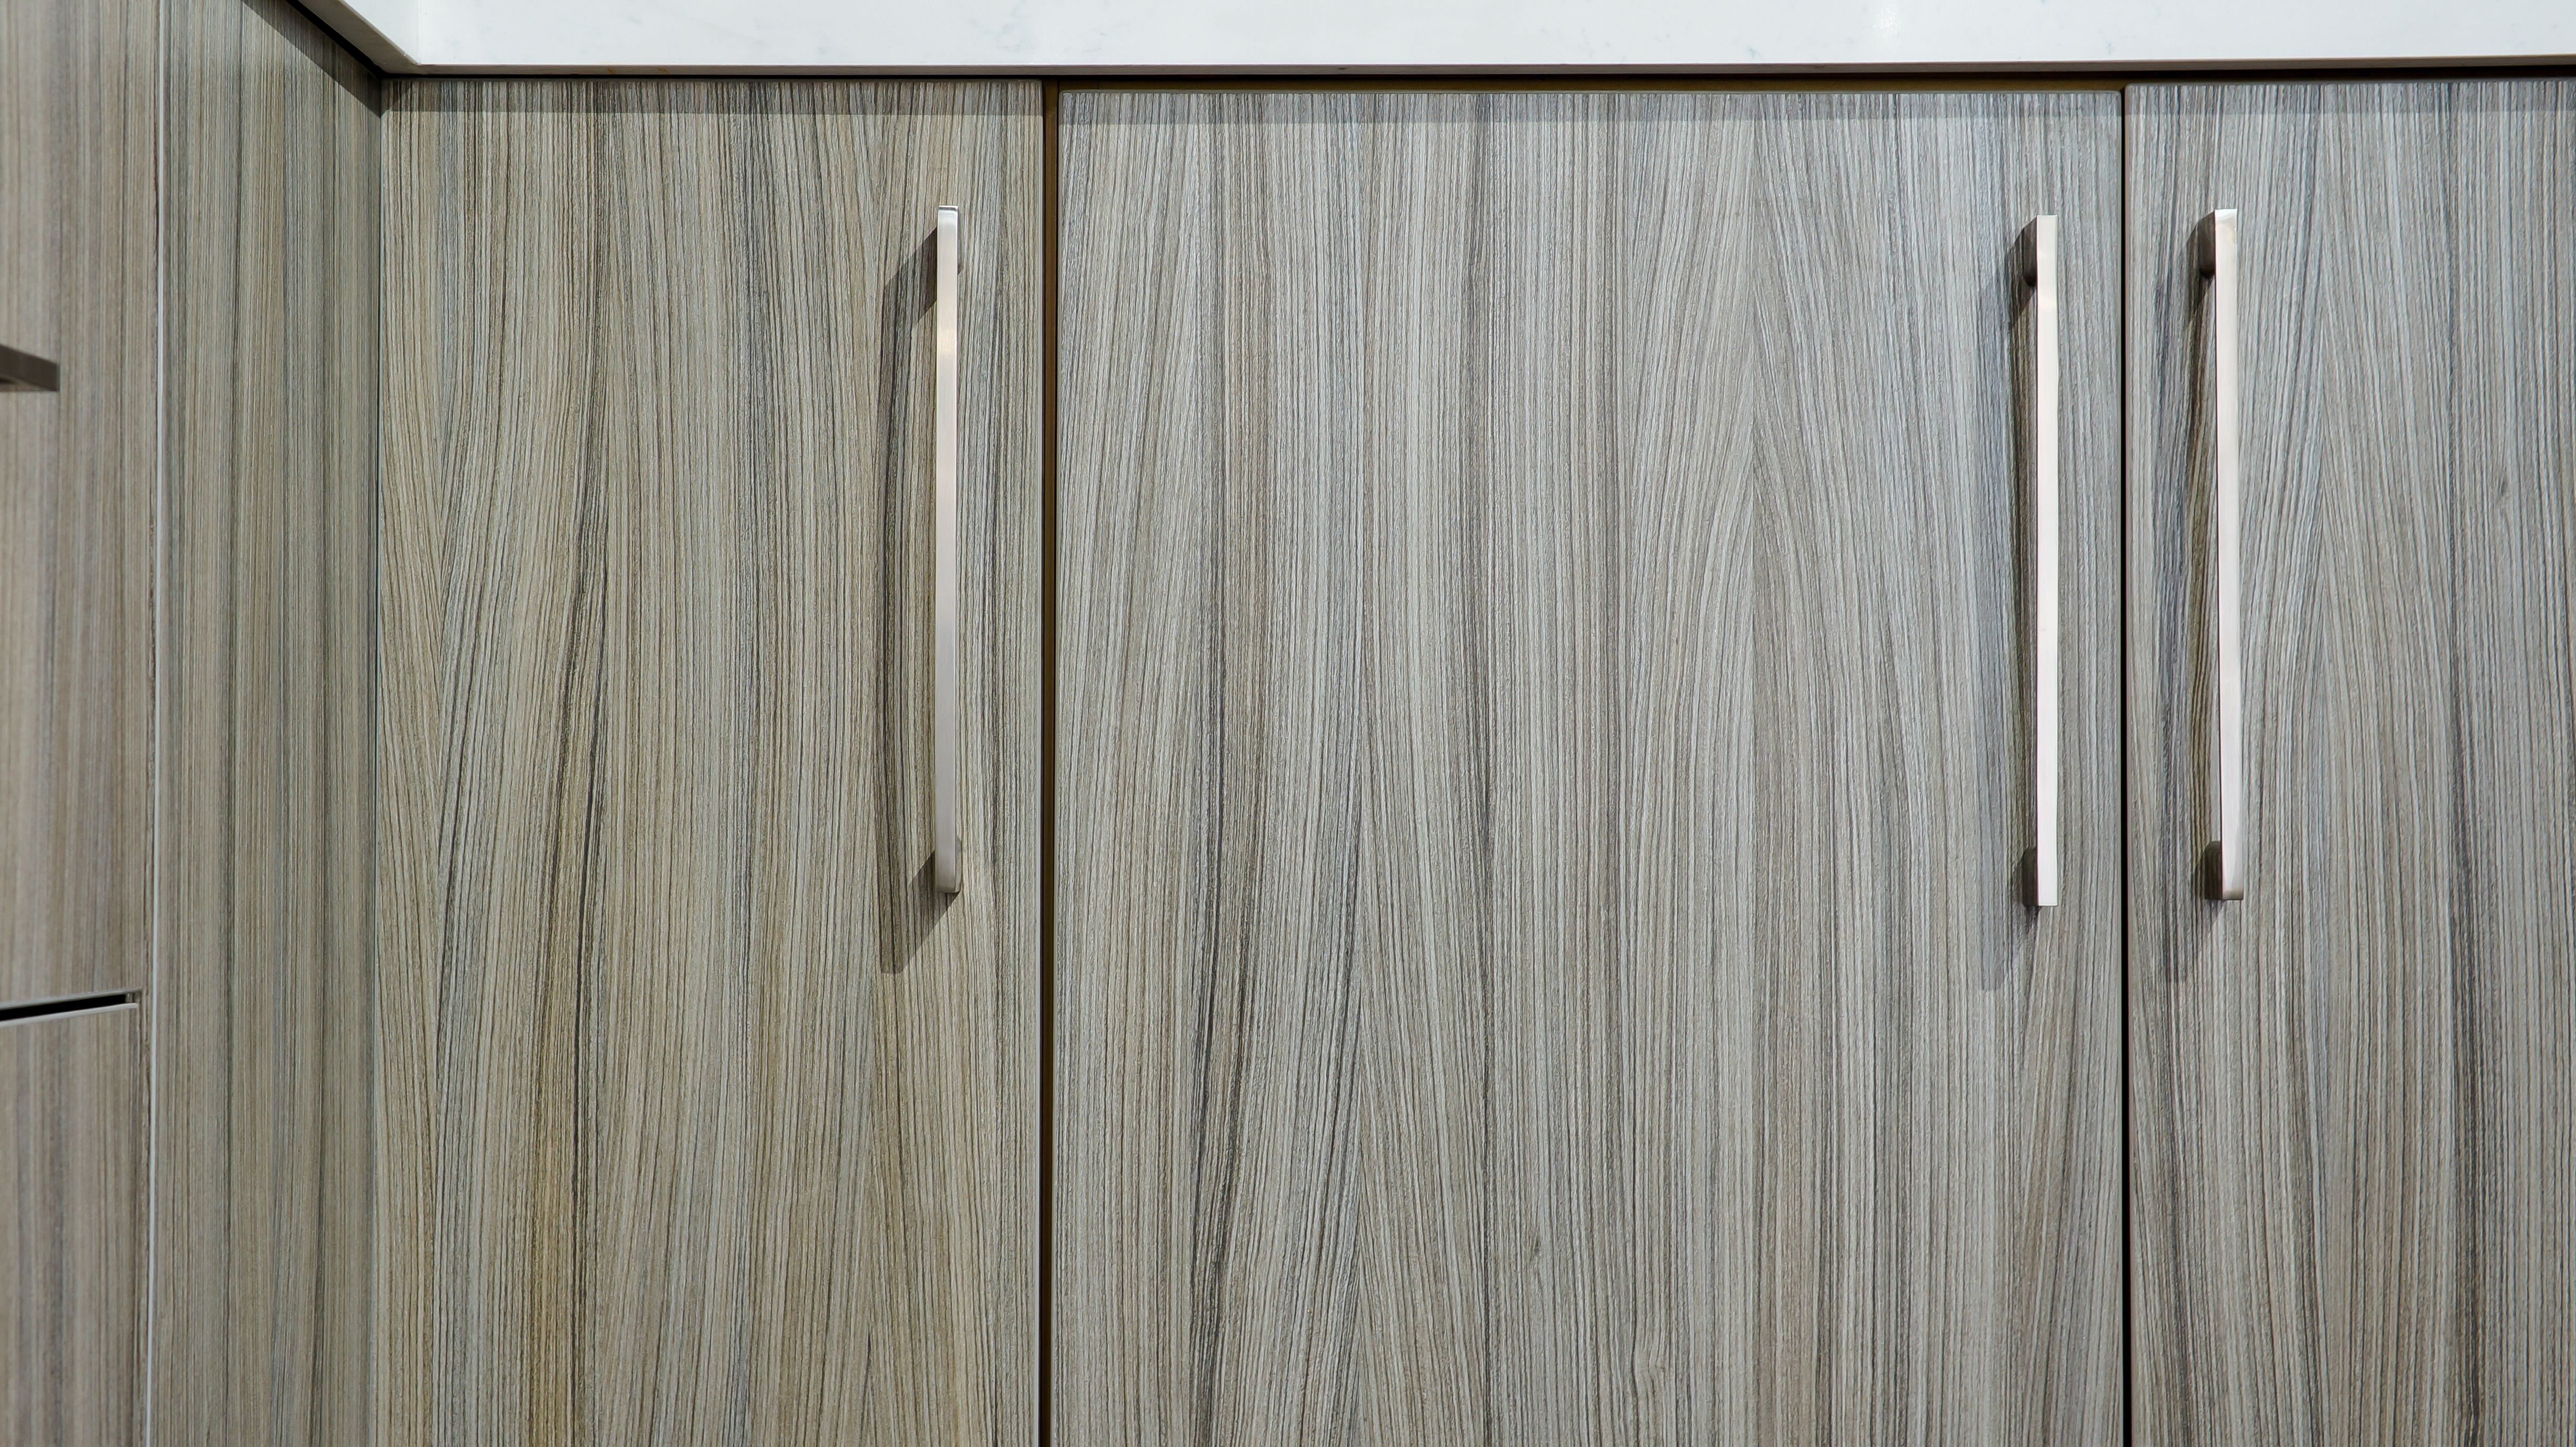 Name Your Favorite Texture For Cabinets In The Kitchen Www Cabinetcity Net Cc Cabin Coastal Kitchen Cabinets Kitchen Cabinets Types Of Kitchen Cabinets